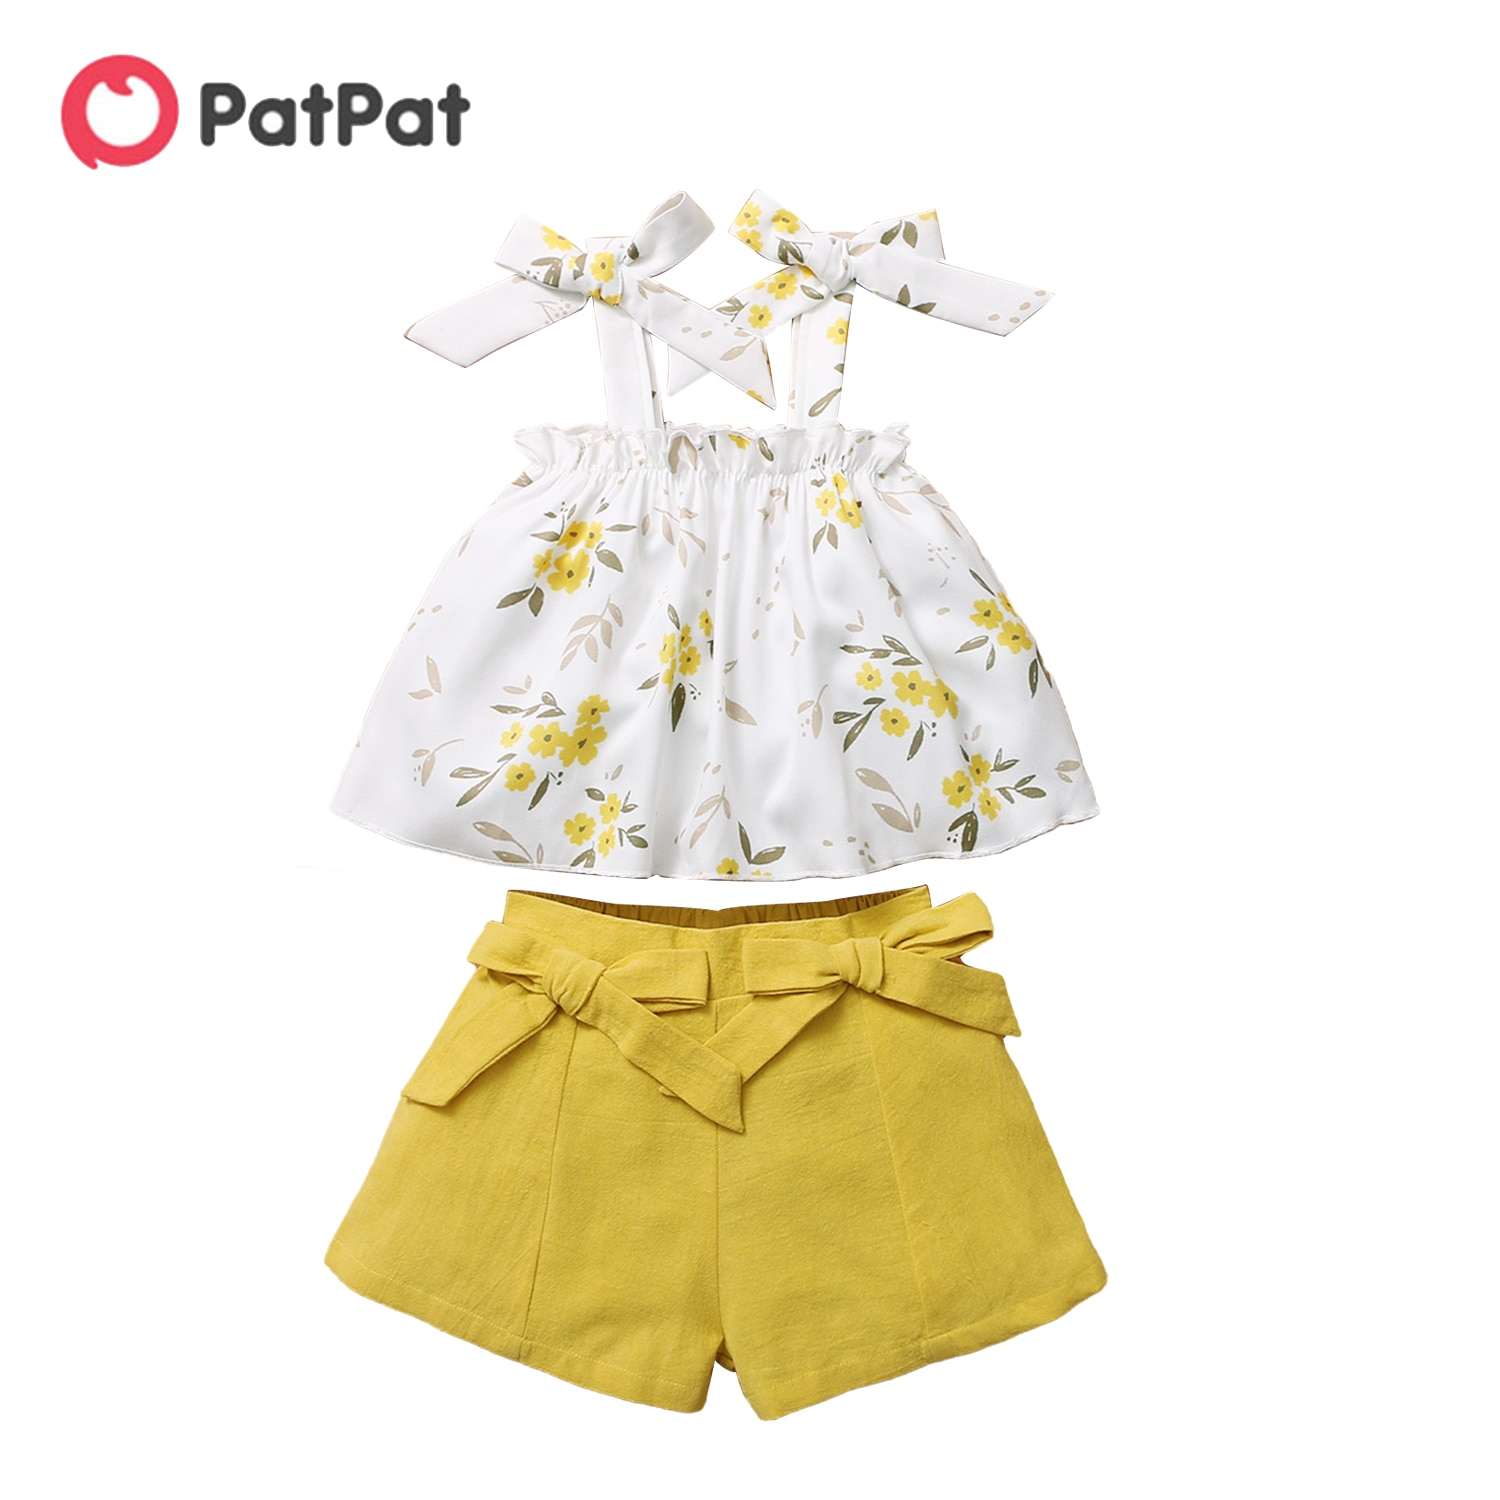 PatPat 2021 New Arrival Baby / Toddler Casual Basic Solid Tee and Shorts Set